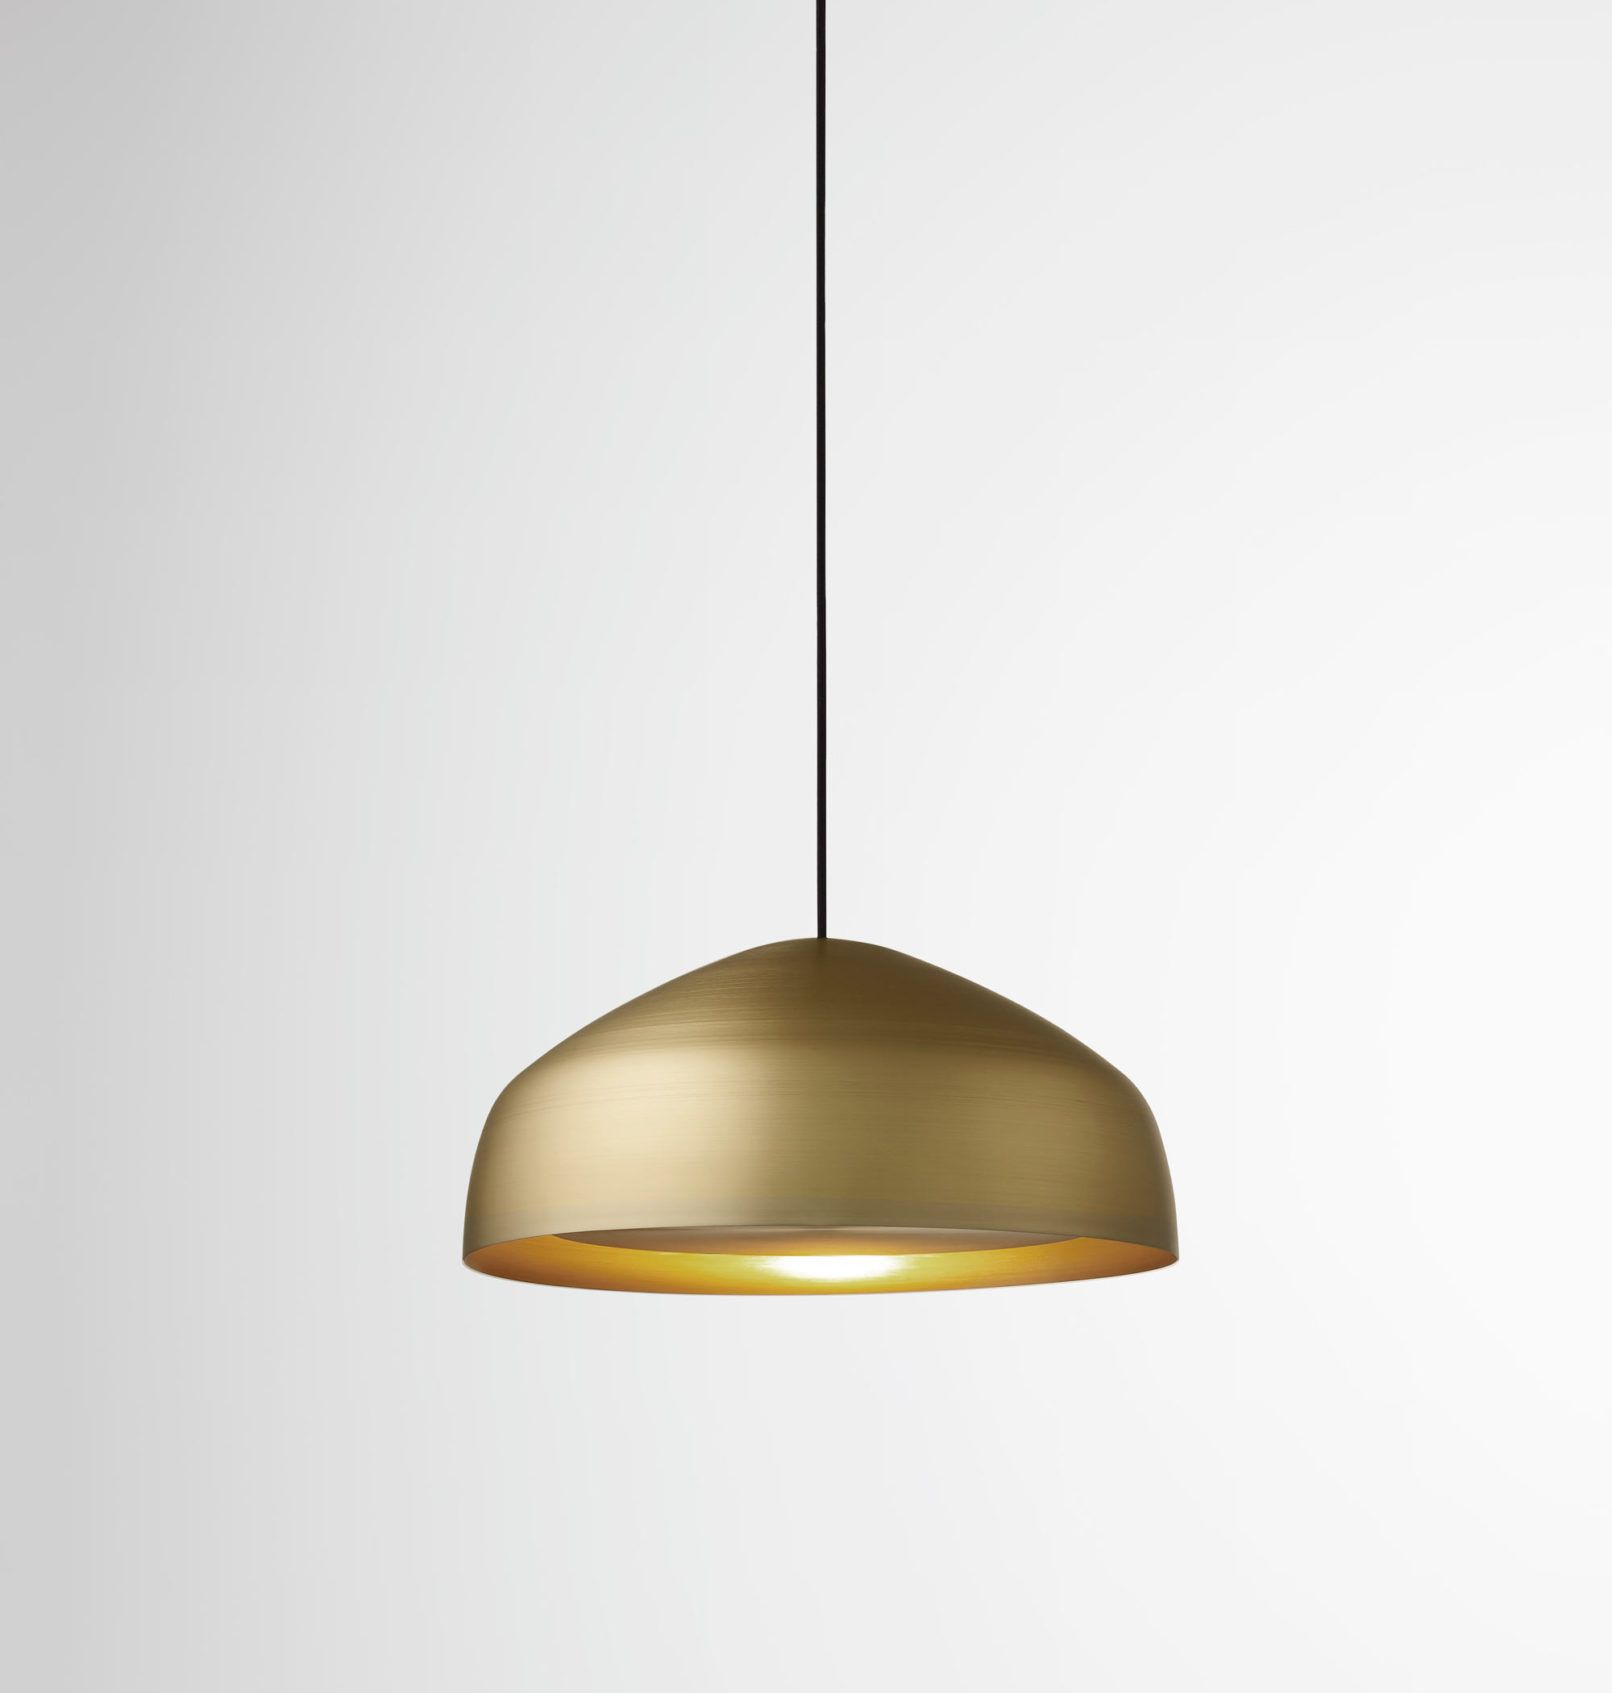 Contemporary Lighting Melbourne LightingContemporary Pendant Light